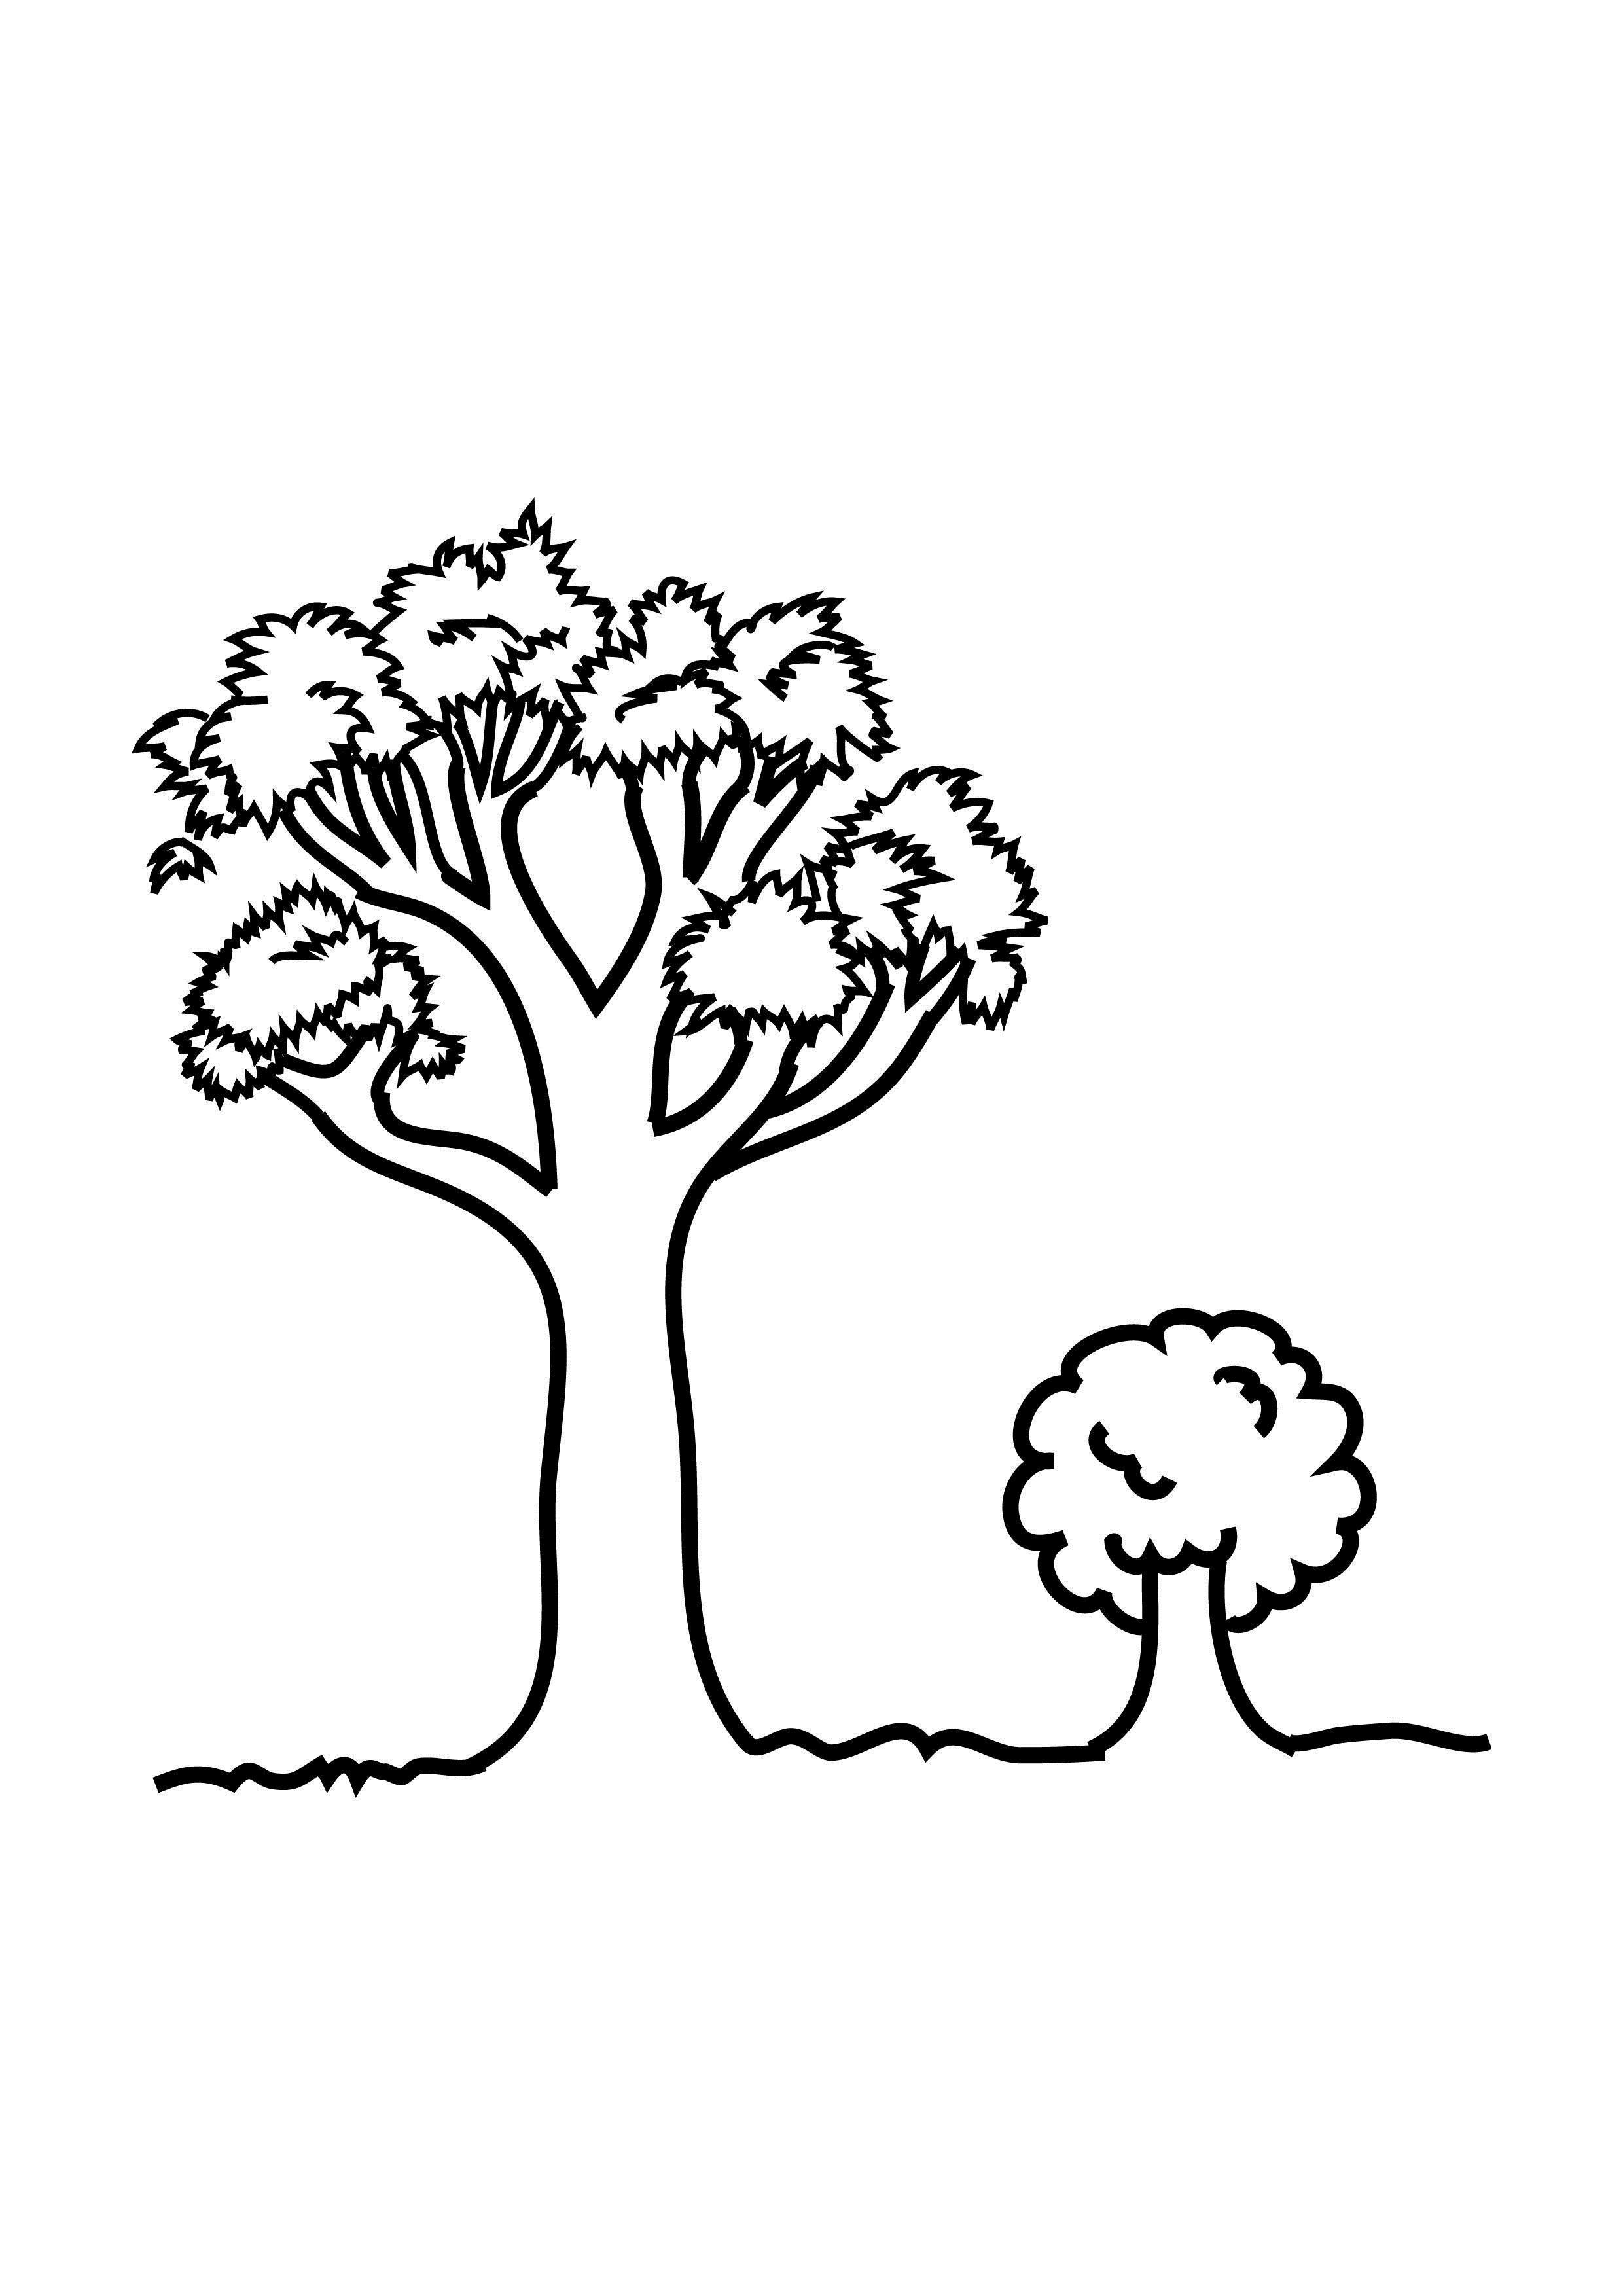 2480x3508 Printable Tree Coloring Pages For Kids Small Coloring Pages Image